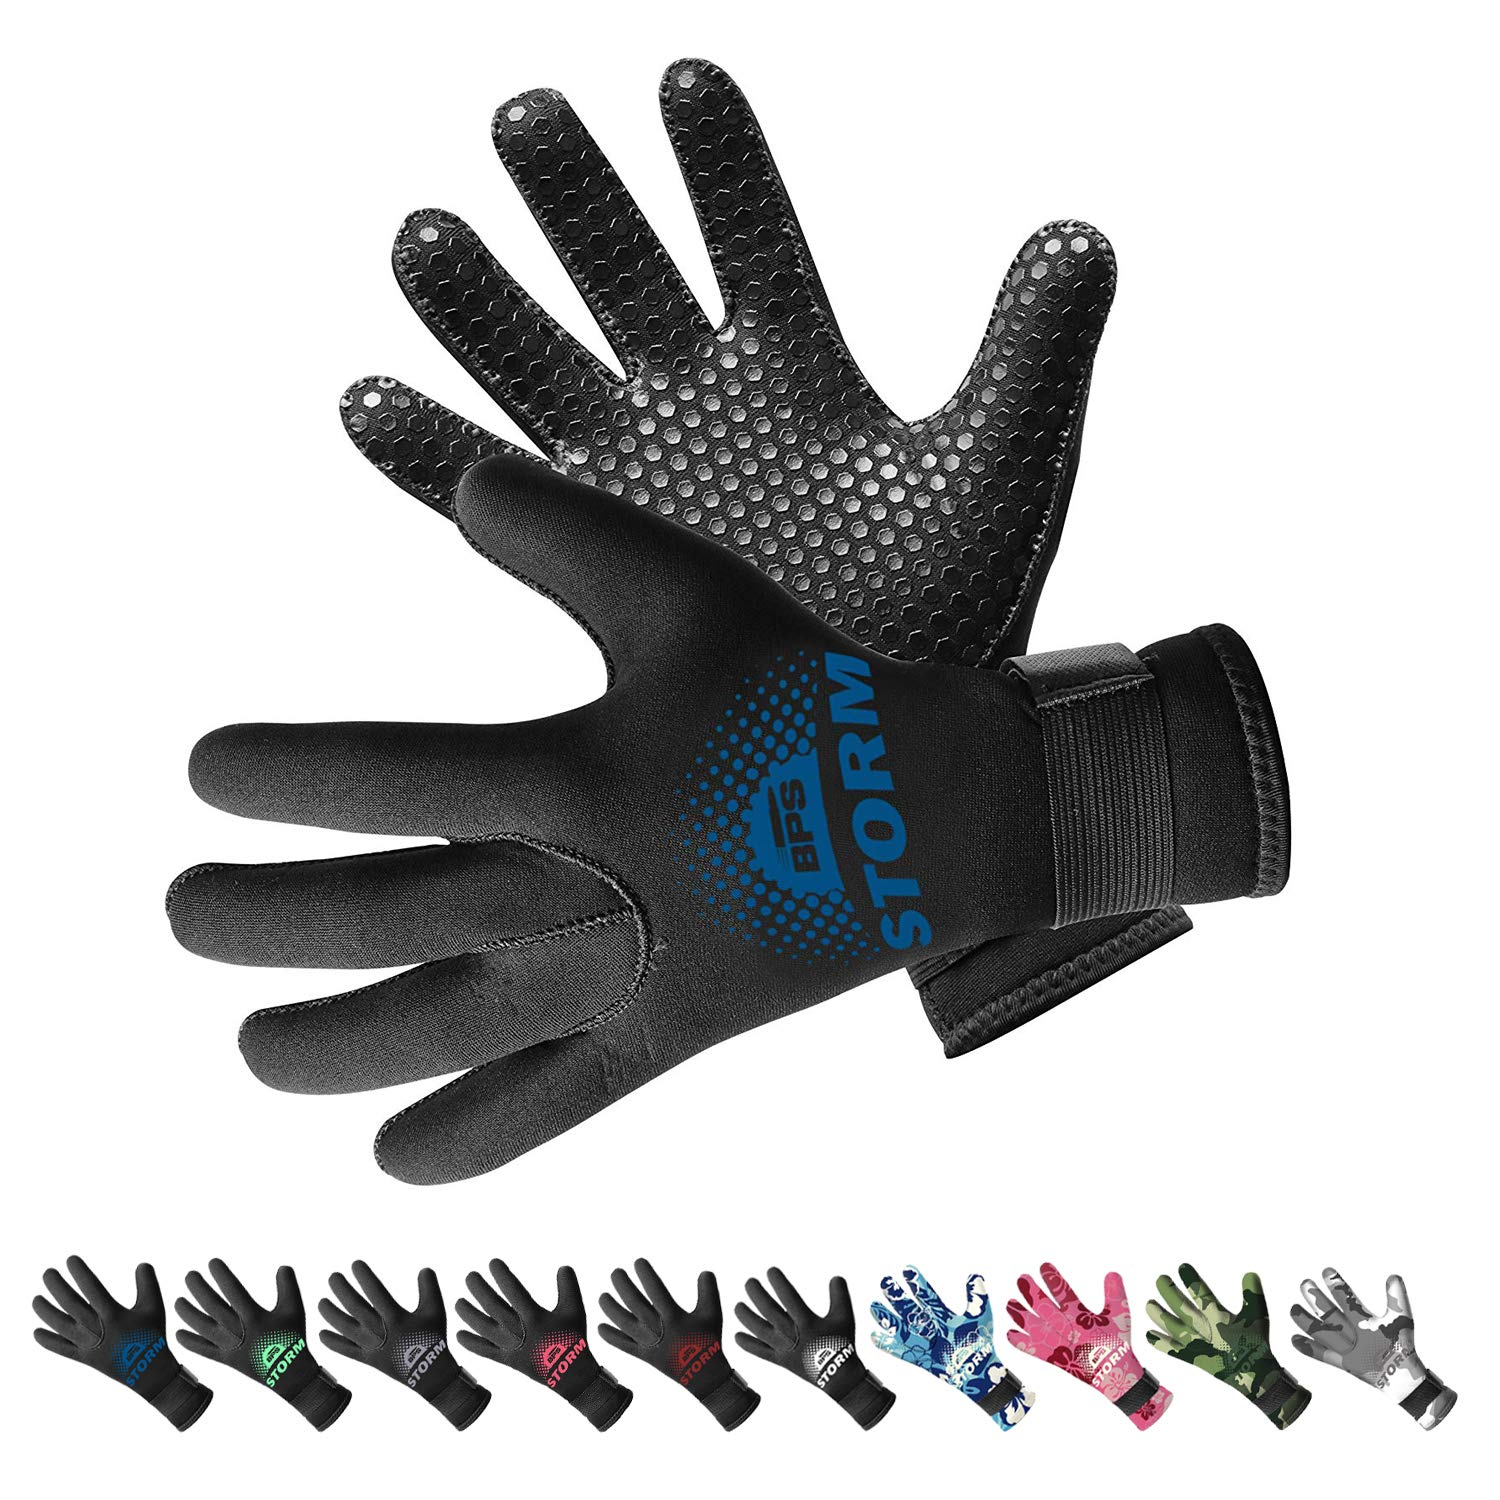 BPS 3mm Neoprene Dive Gloves with Anti Slip Palm - Five Finger Gloves for Sailing, Spearfishing, Paddleboarding, and Other Water Activities - for Men and Women (Black/Snorkel Blue, Medium) by BPS